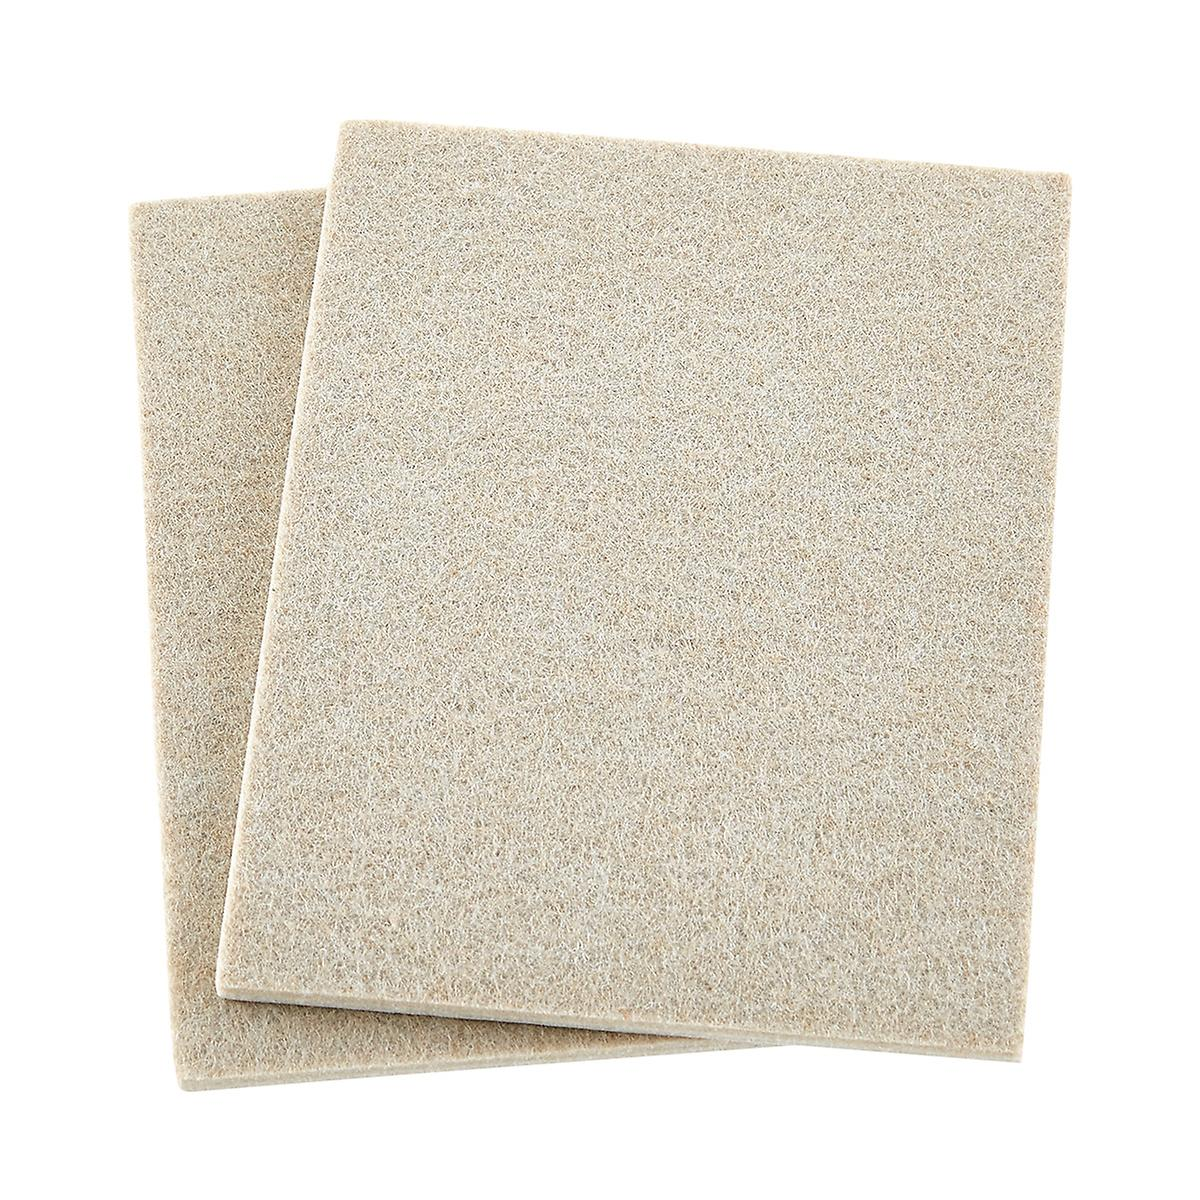 Rectangular Self-Adhesive Felt Pad